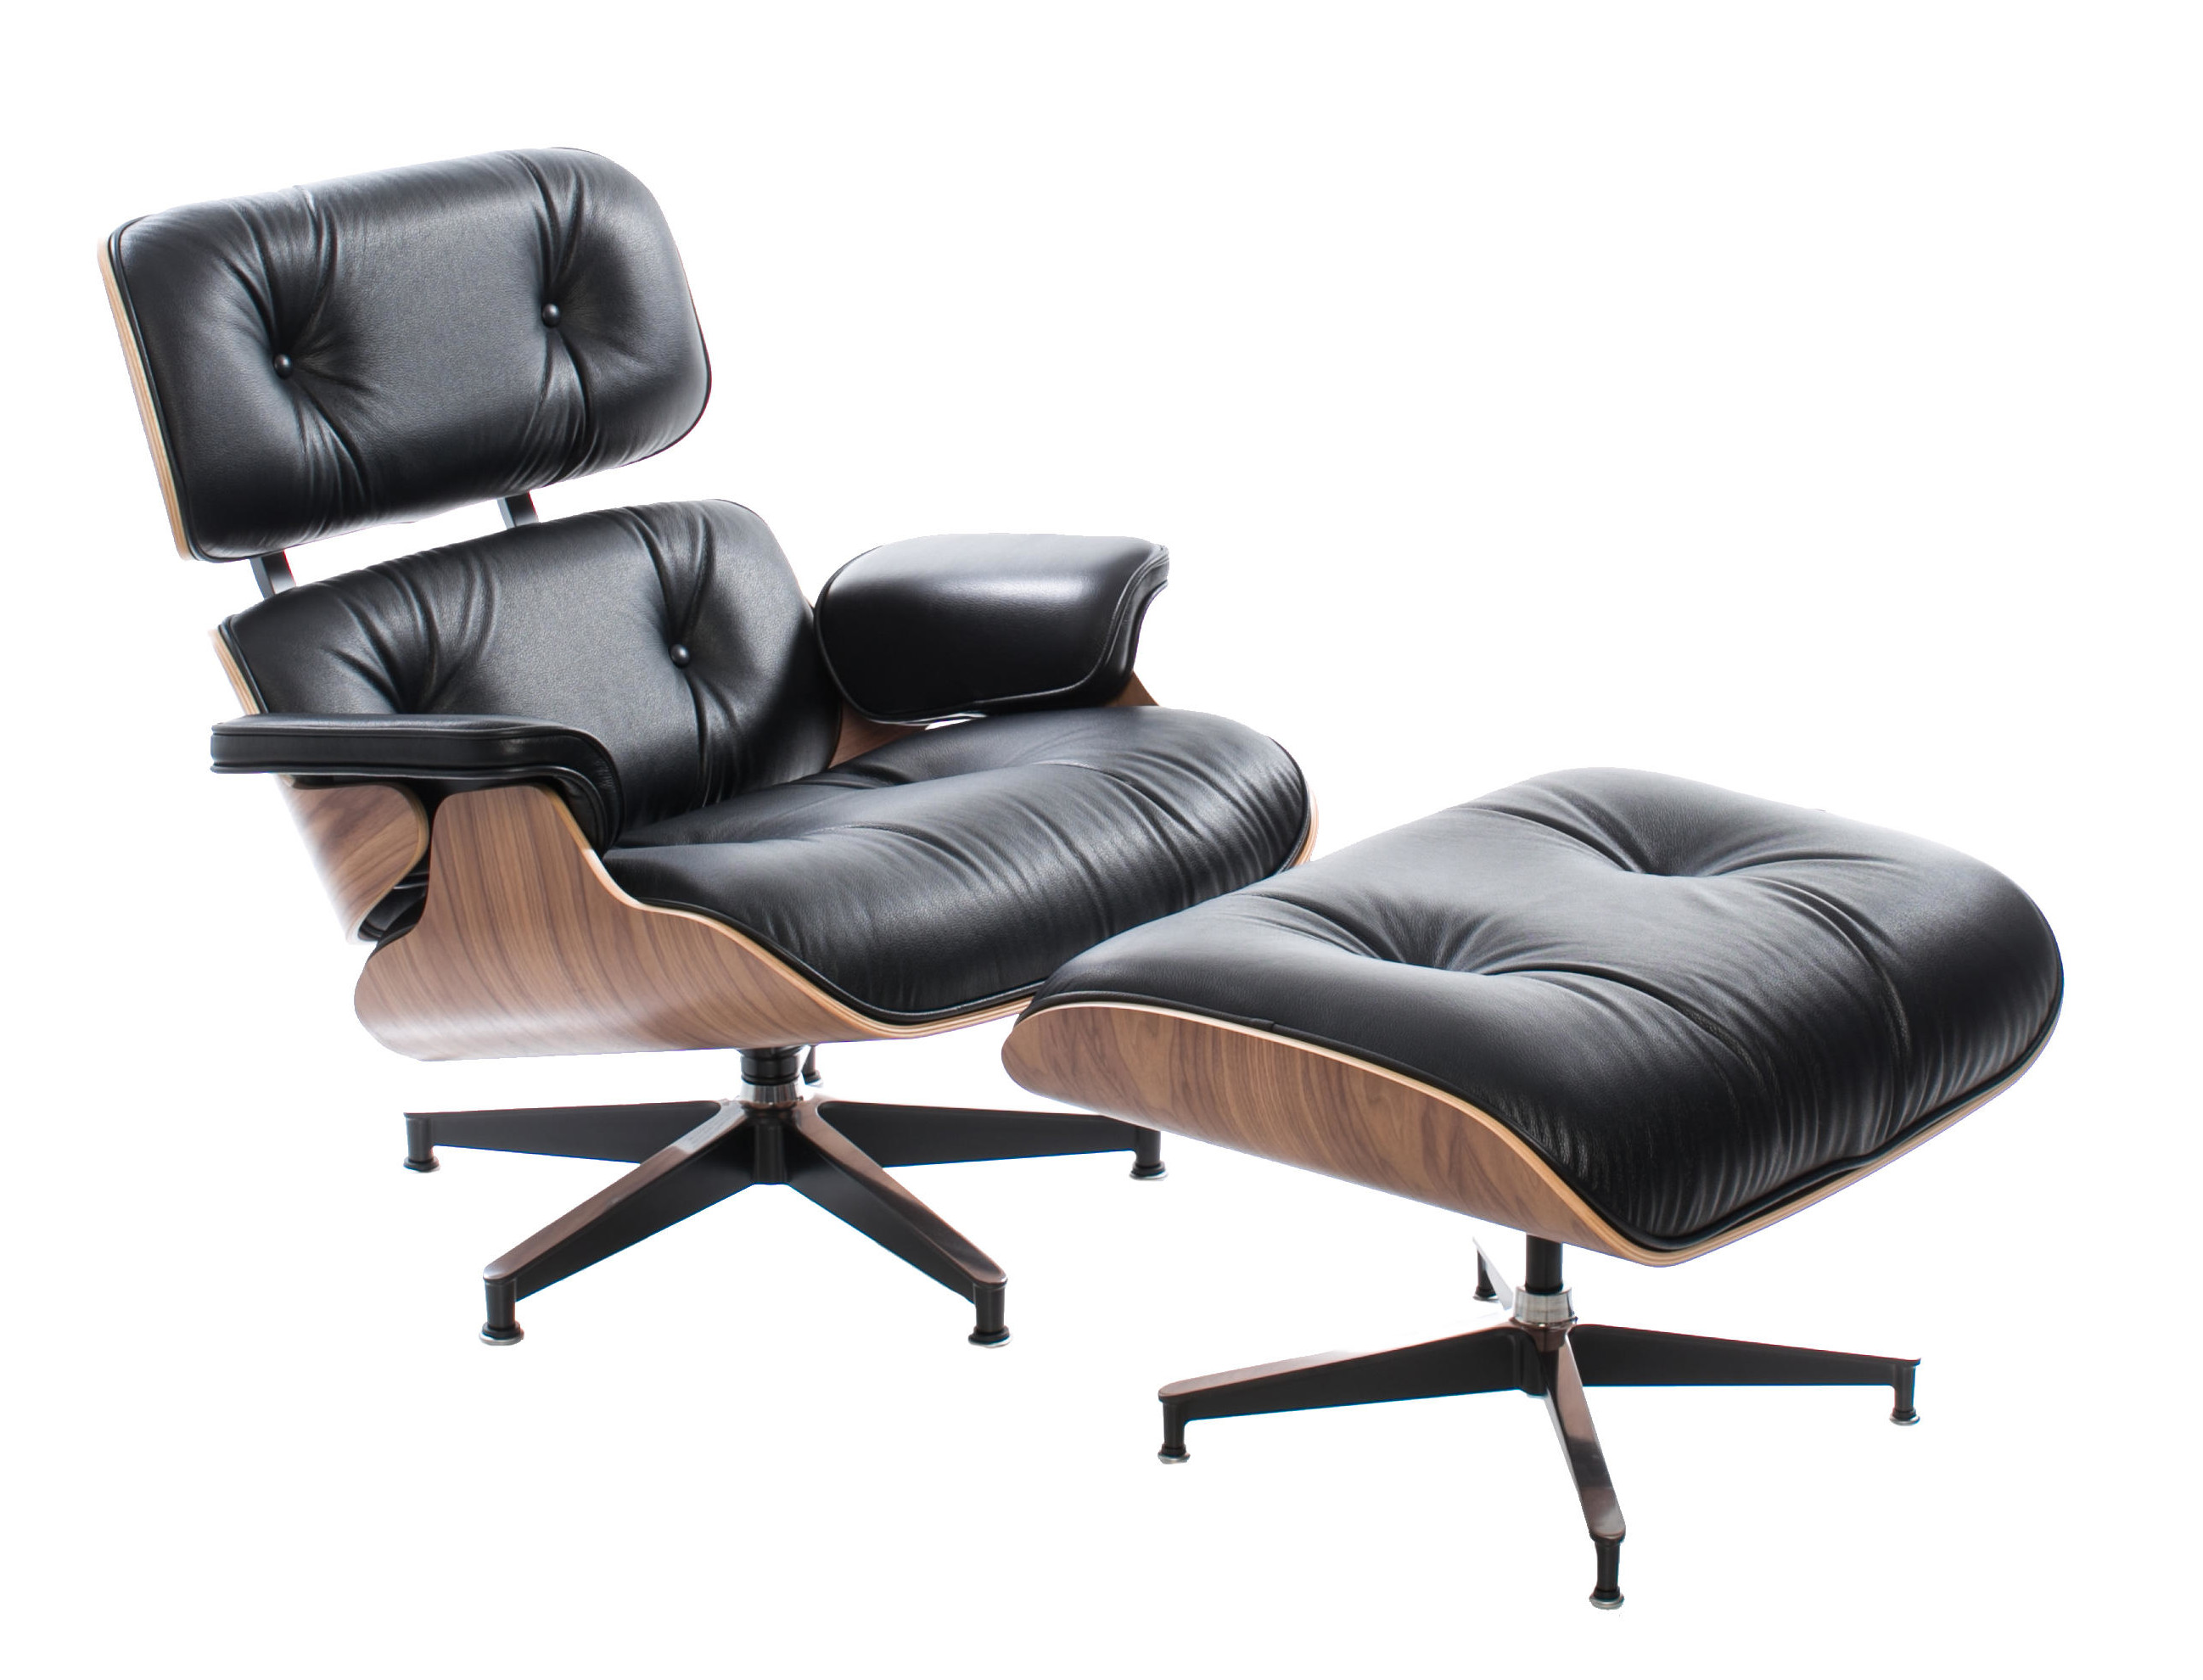 film lounge vintage furniture recliner chair eames pamono ottoman product and